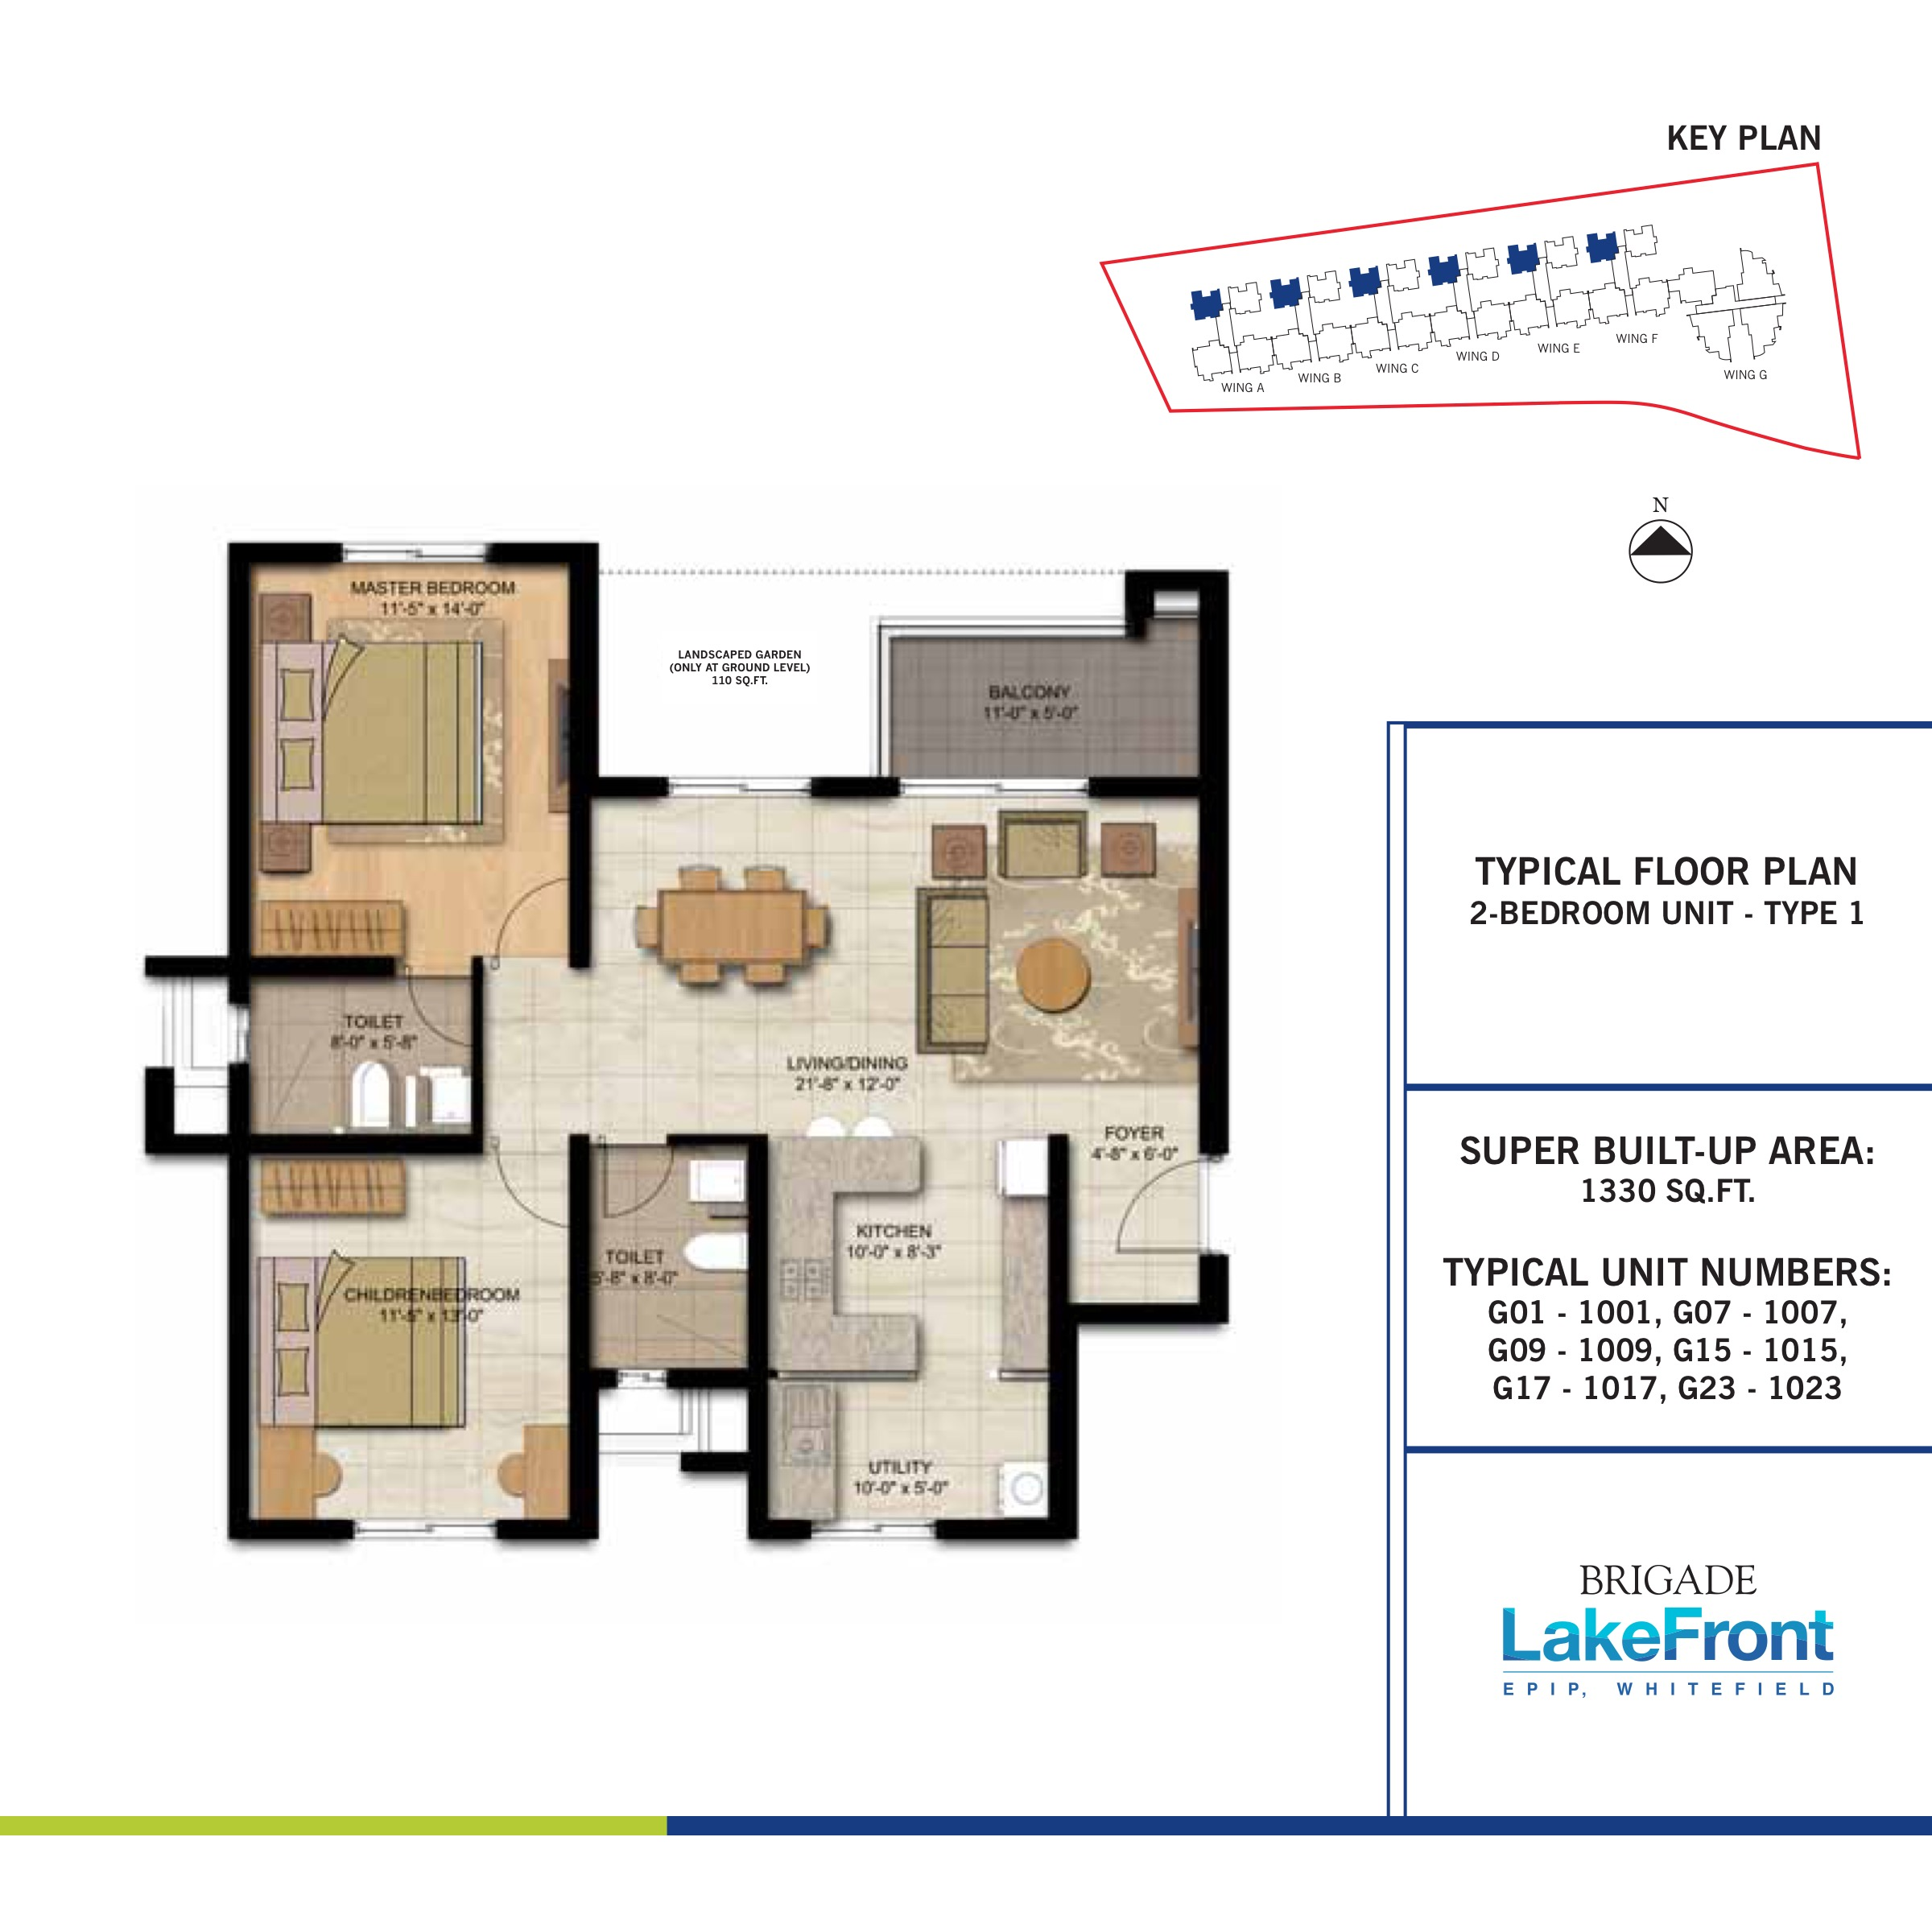 Lakefront house floor plans 28 images brigade for Lakefront house floor plans